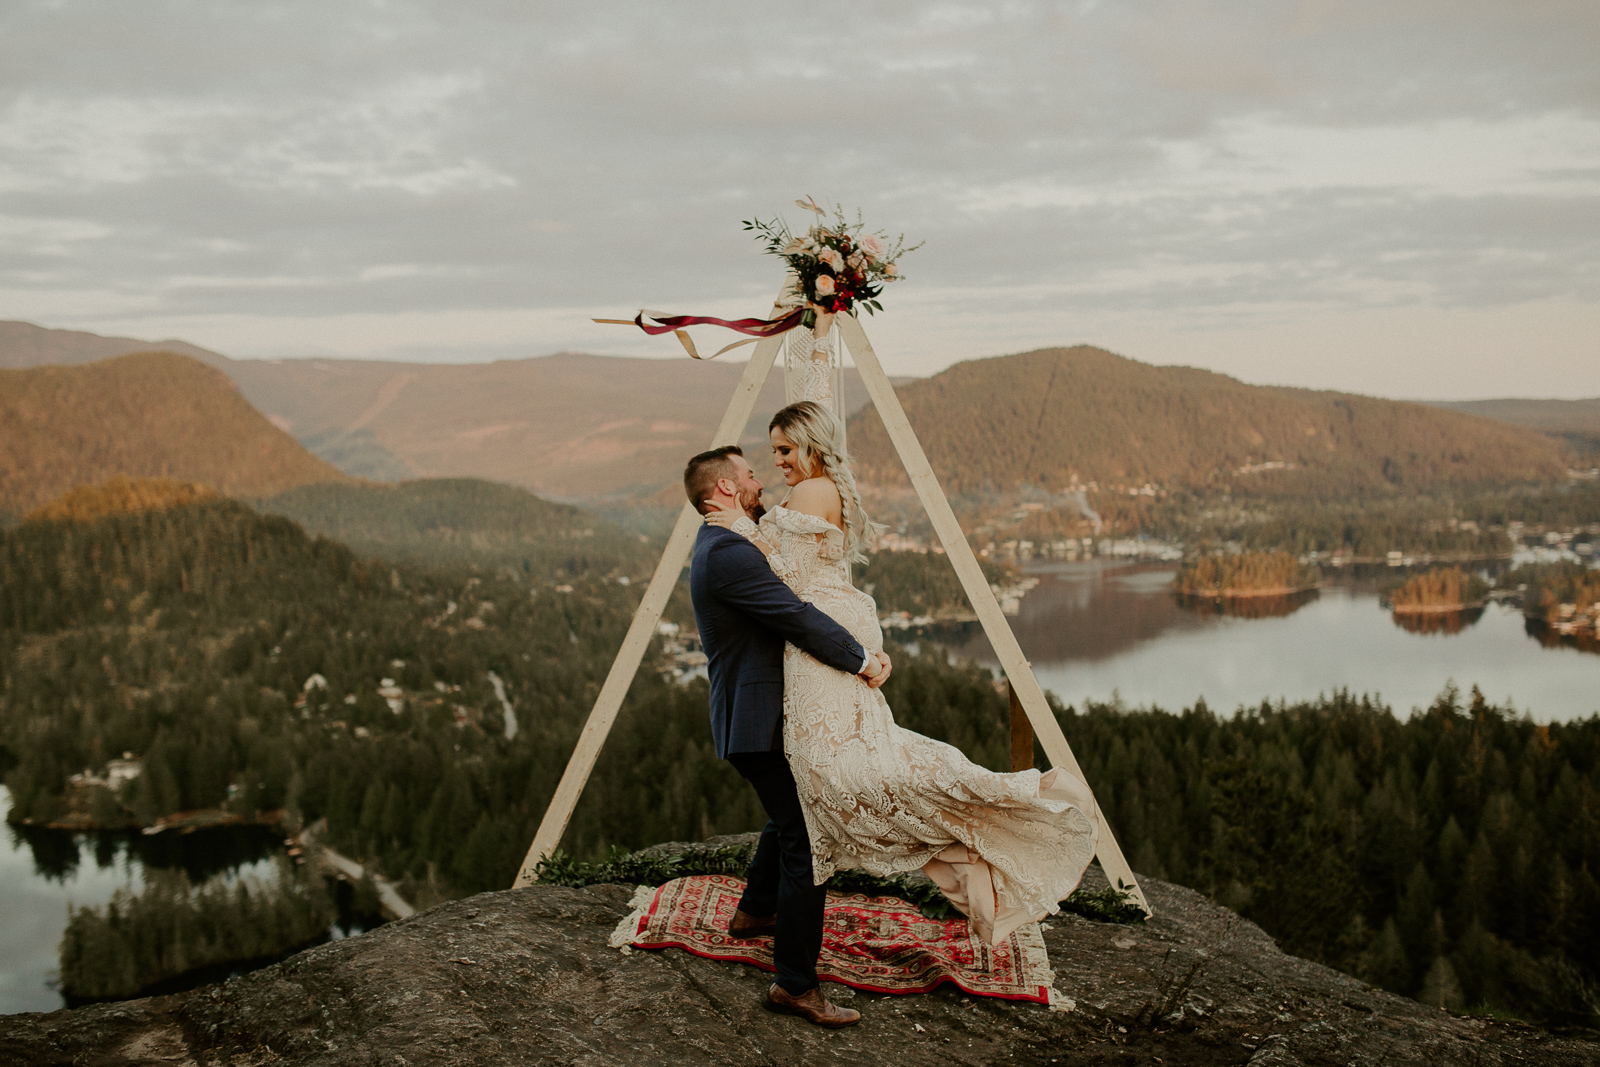 Luke Lambertson Photo_BritishColumbia_Canada_AdventurousCouple_Elopement_IMG-8534.jpg